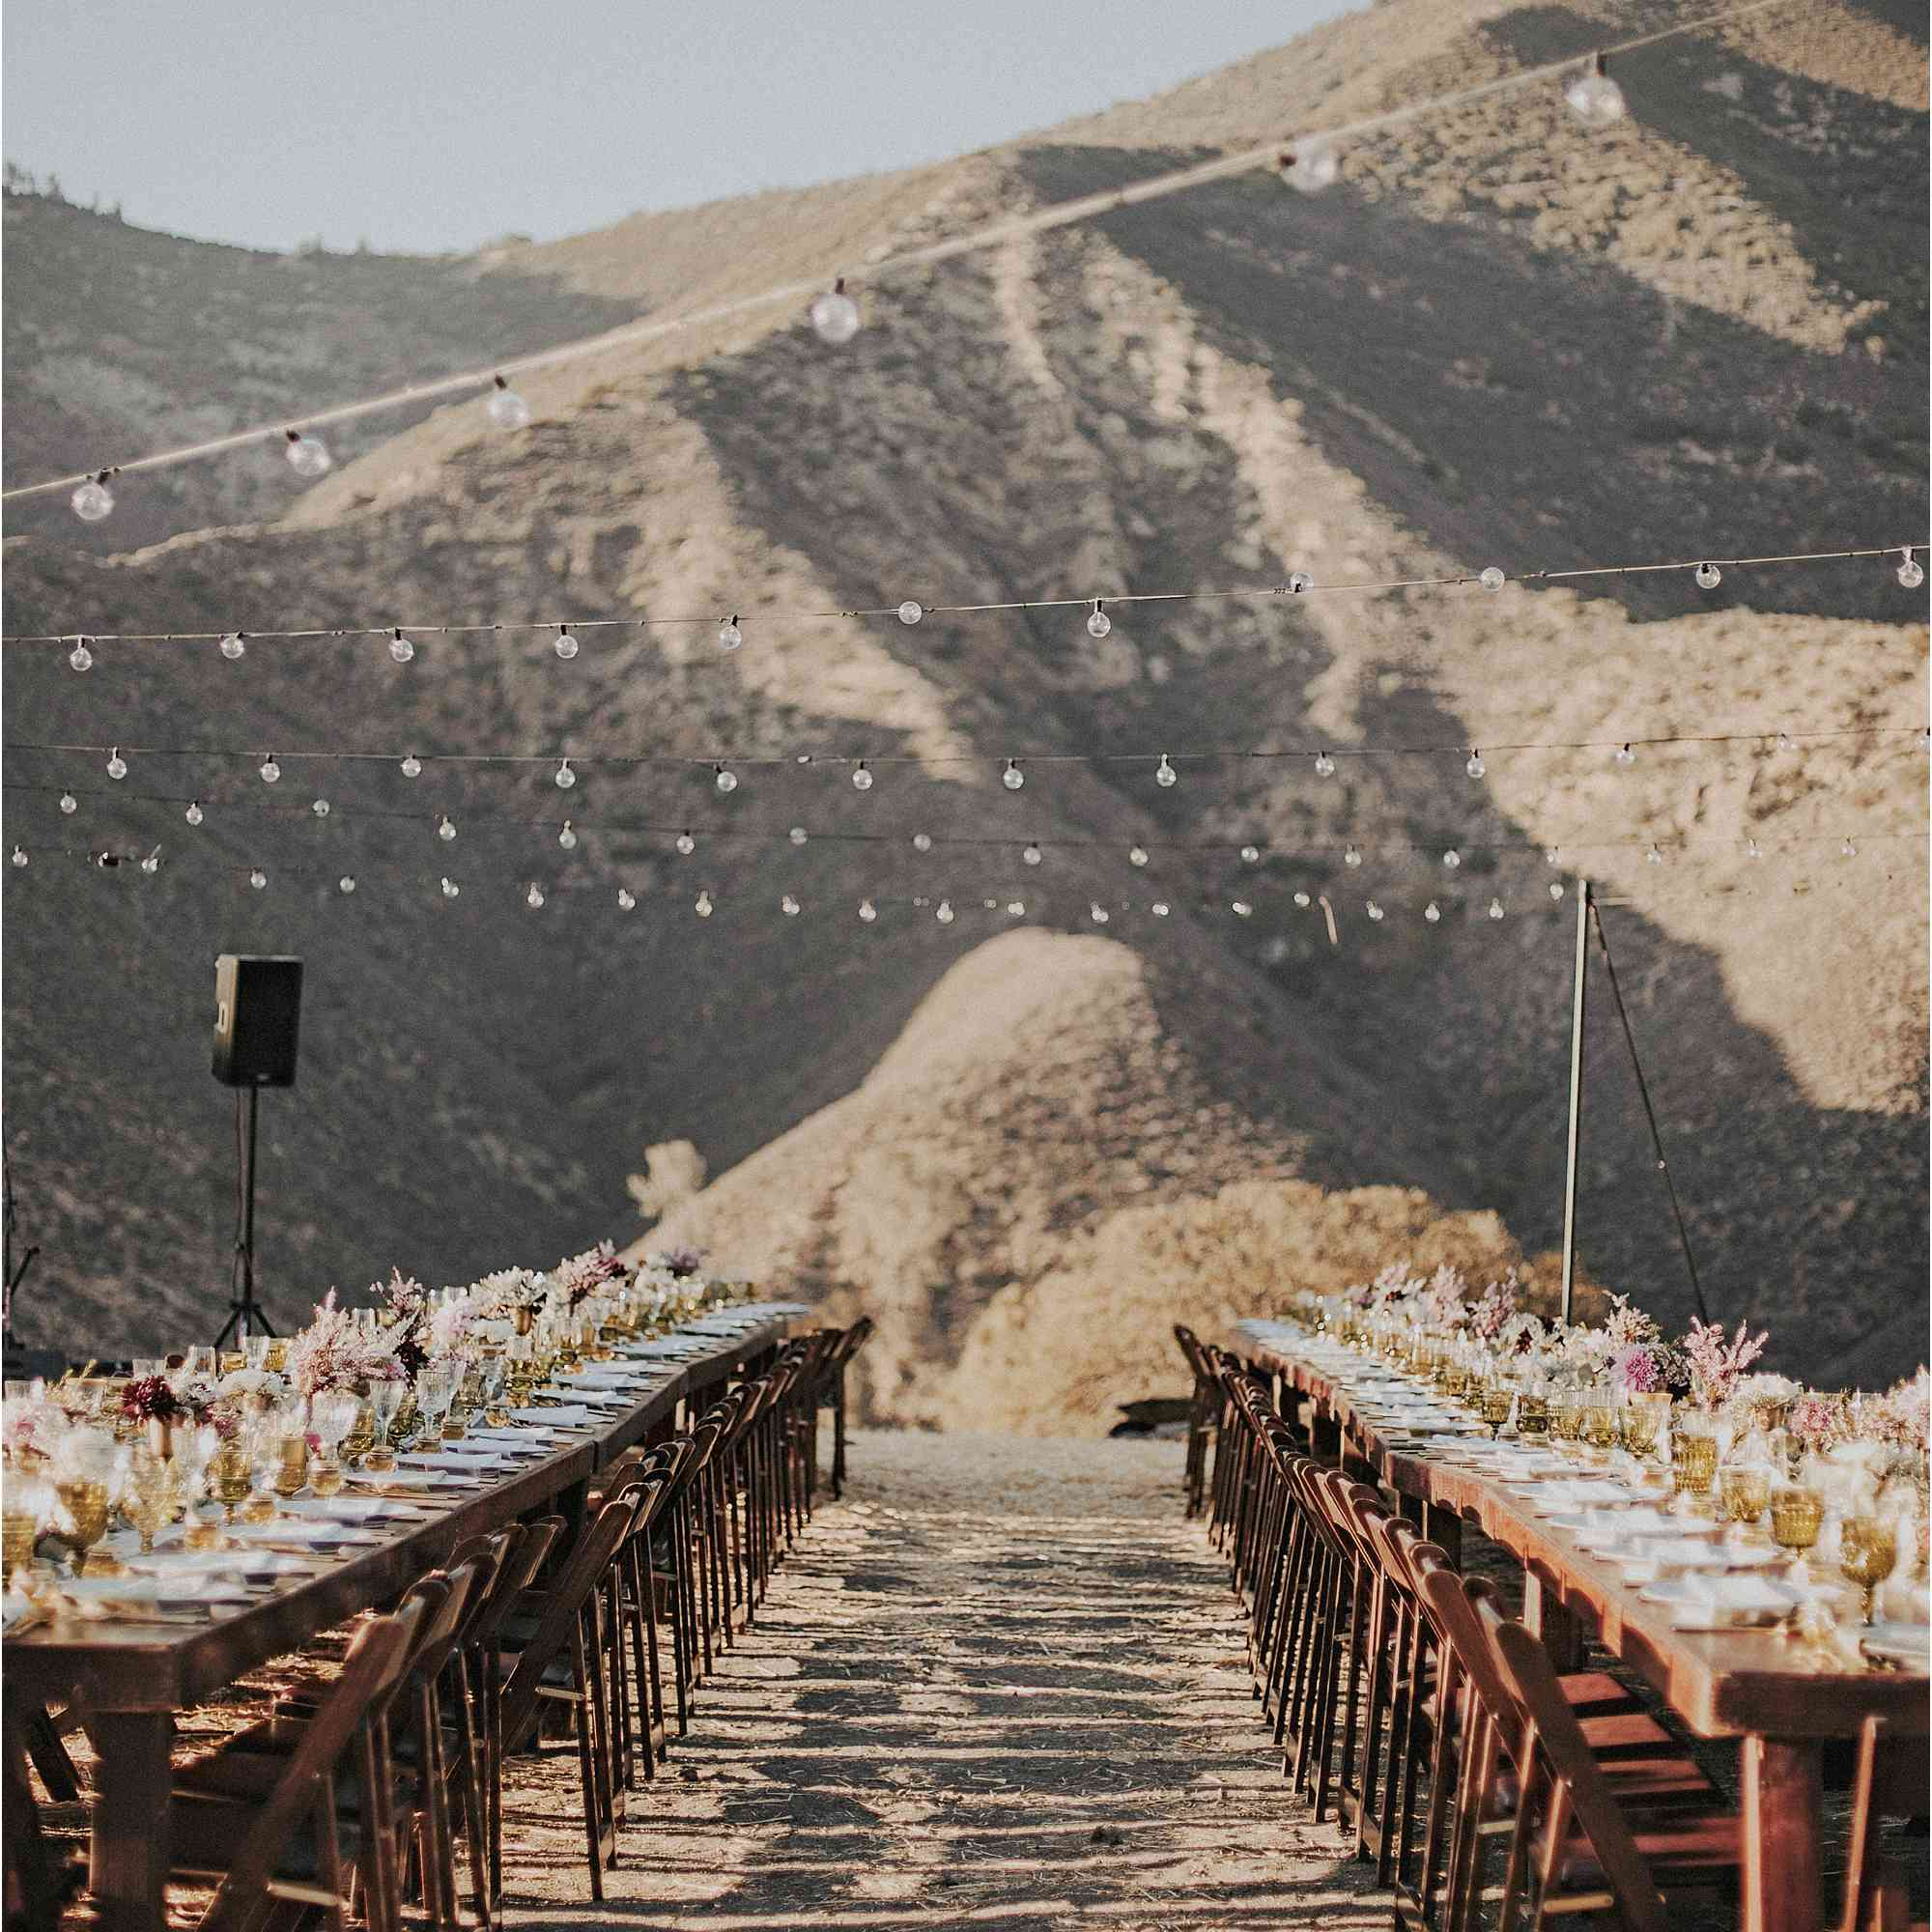 Reception tables set-up in desert setting